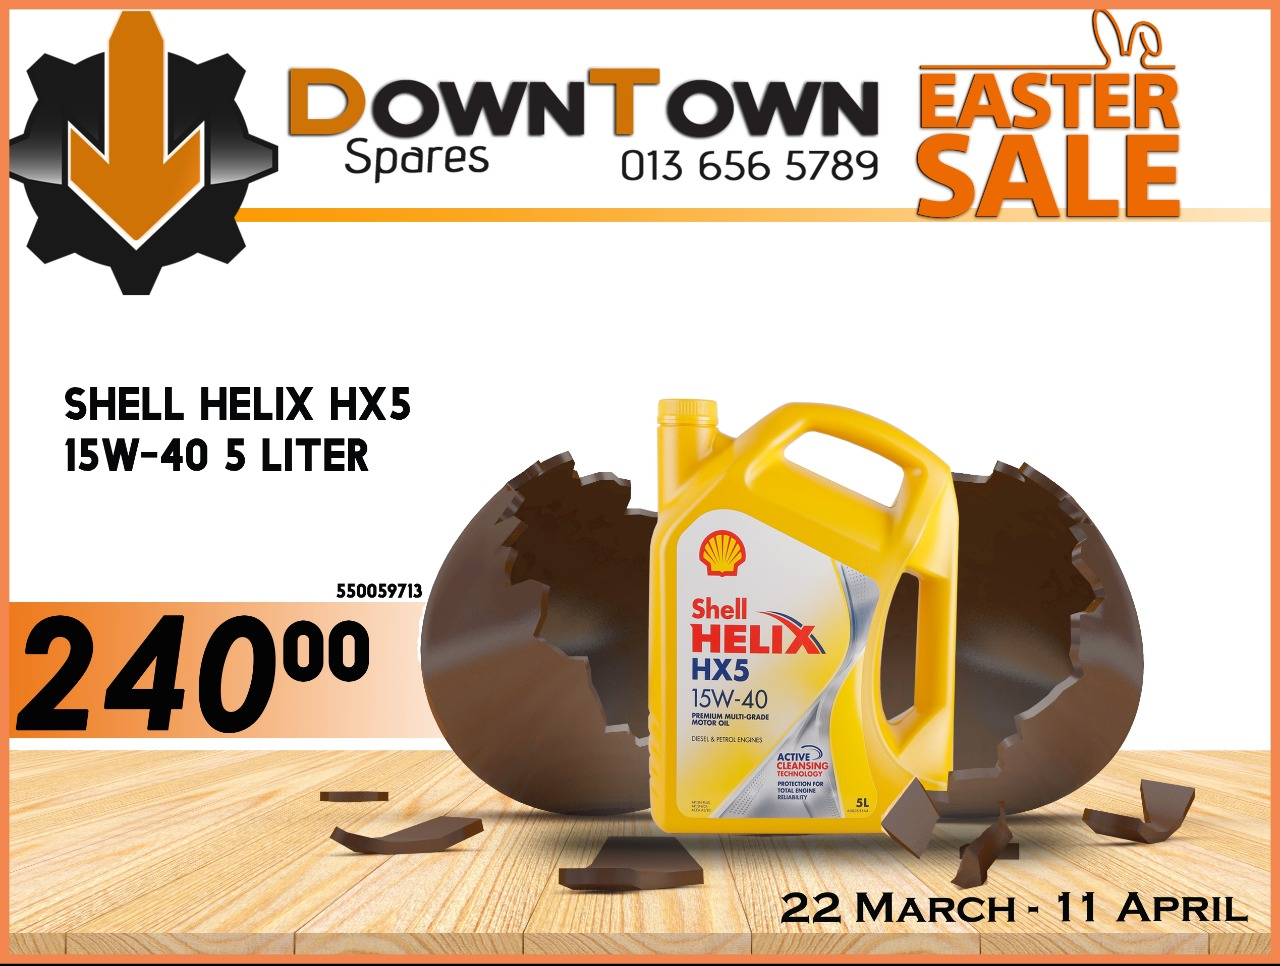 Shell Helix HX5 15W-40 5 Liter ONLY R 240!